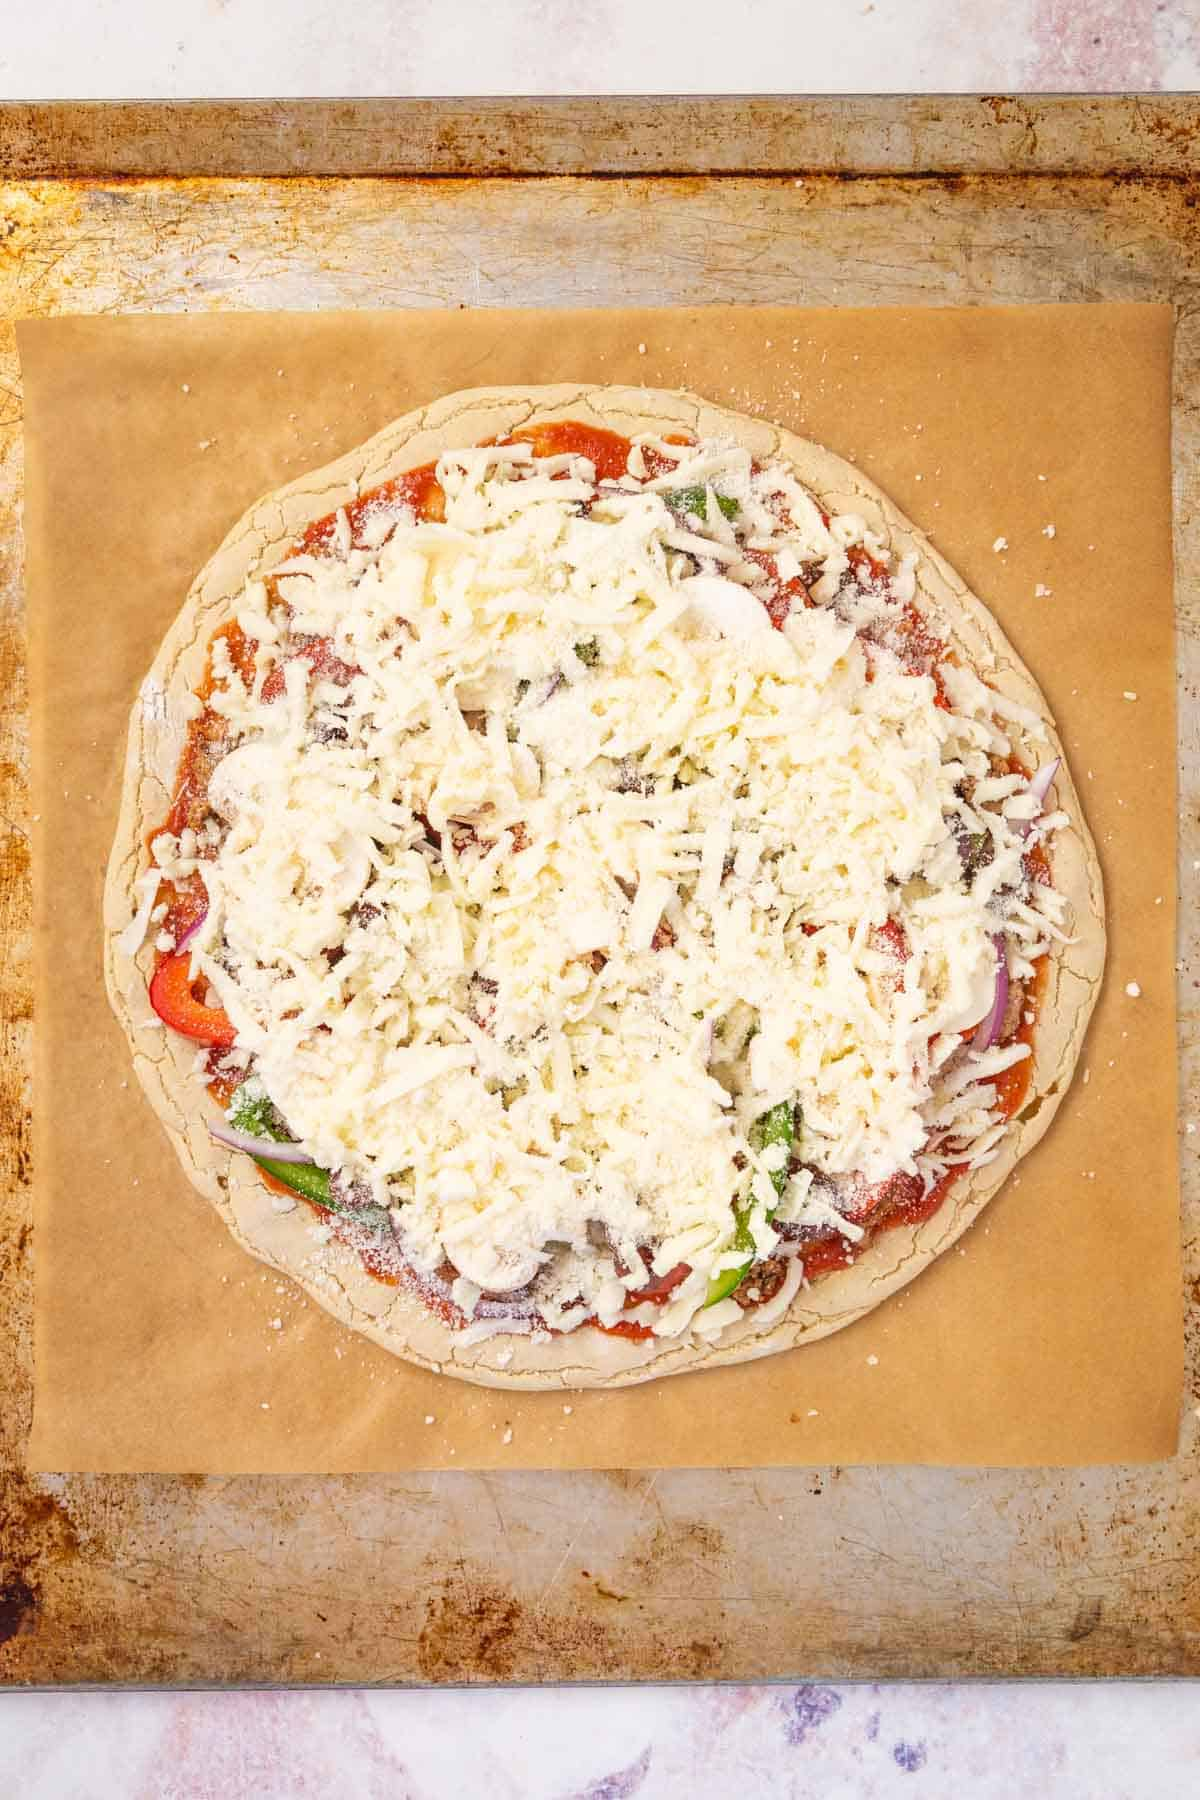 The Cheese on Top of the Veggies, Meat, Sauce and Crust of a Supreme Pizza